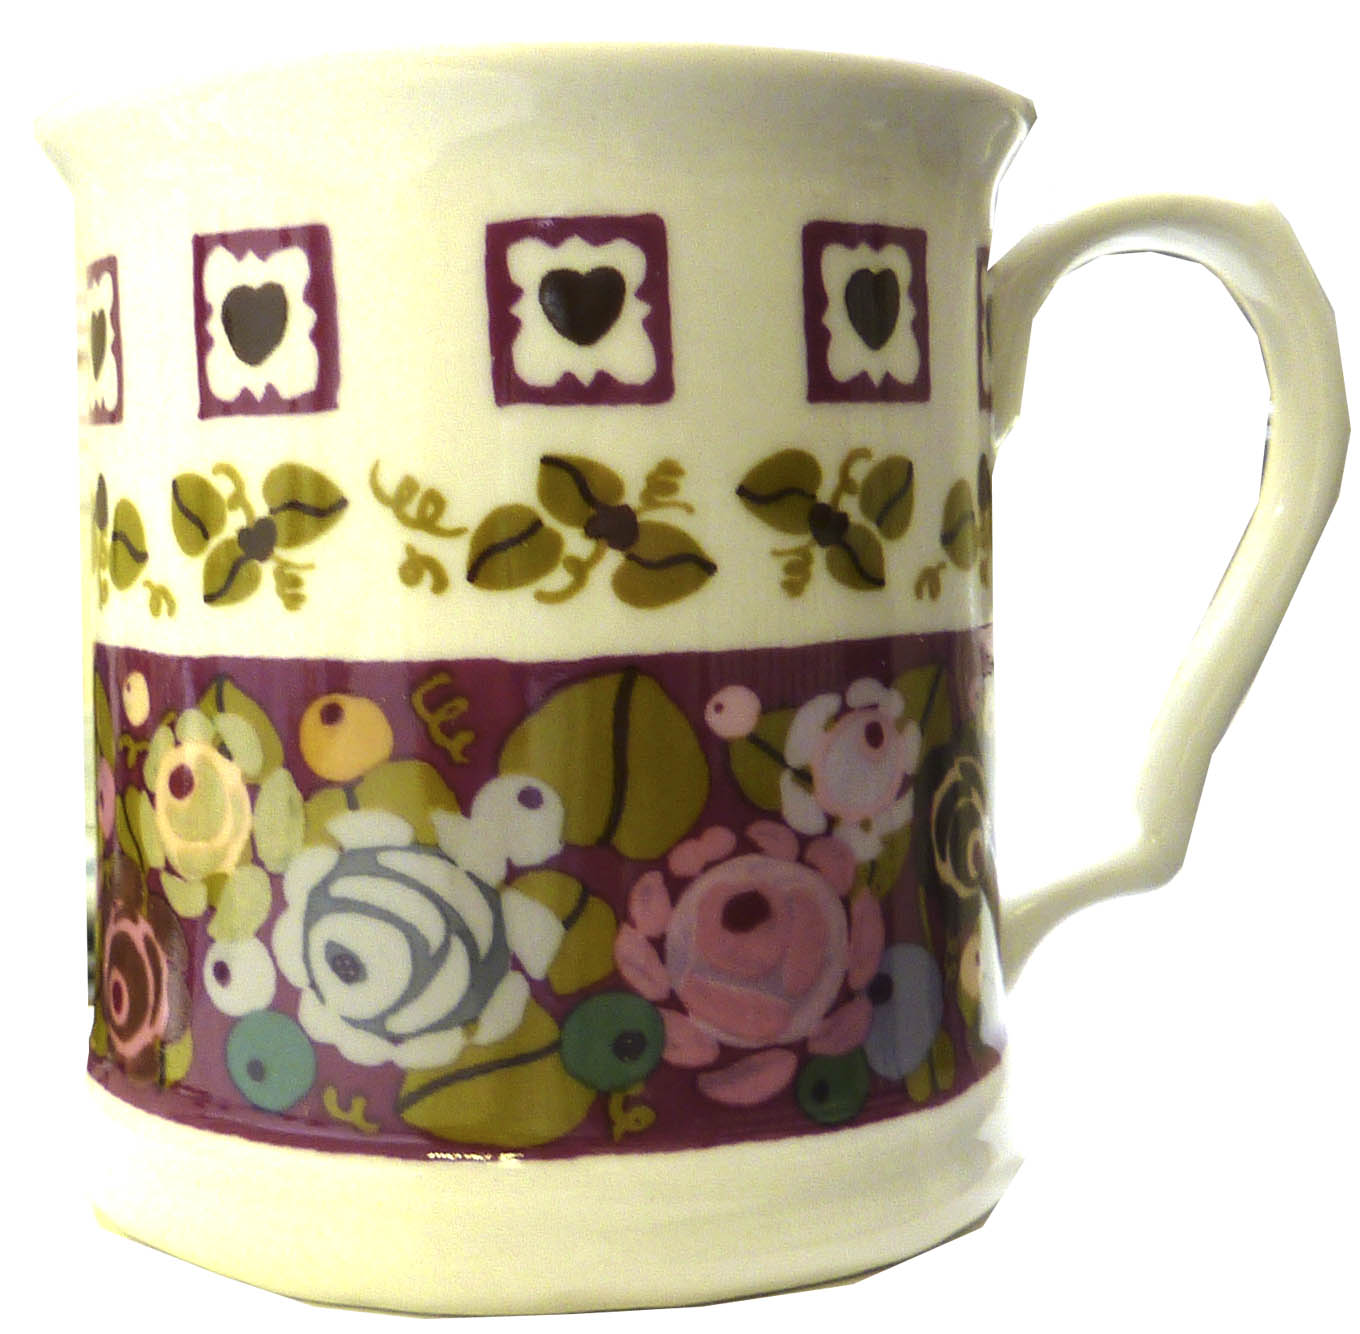 Calamity Jane Large Porcelain Mug by Julie Dodsworth